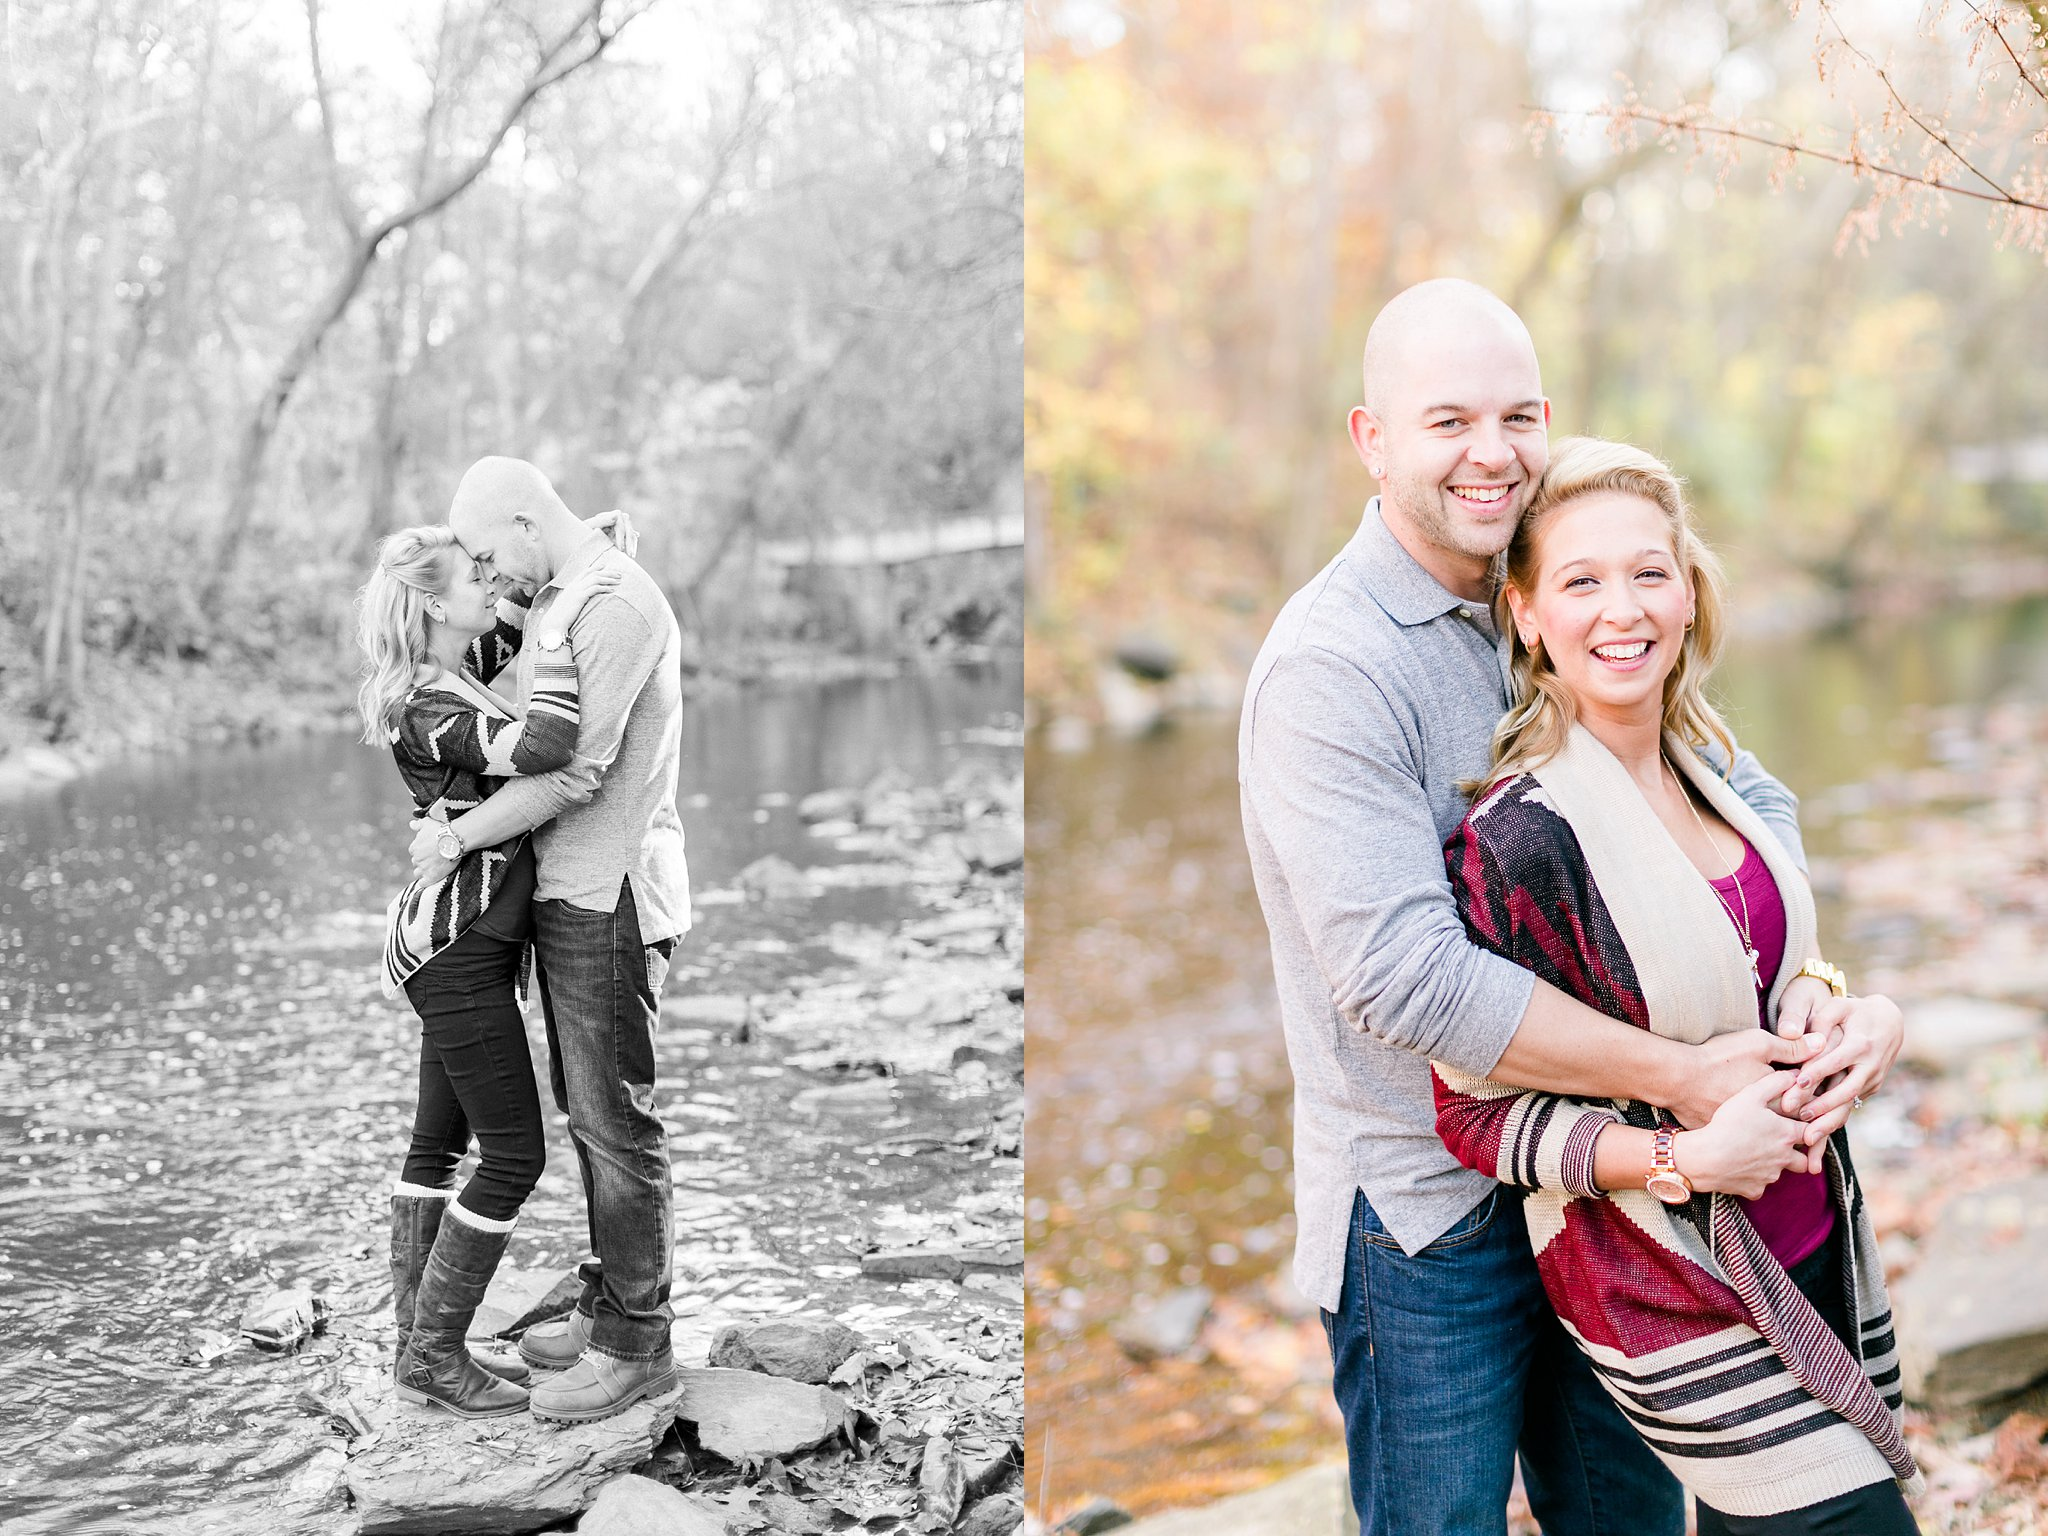 Rock Creek Park Engagement Photos DC Wedding Photographer Megan Kelsey Photography Katie & Conor-48.jpg